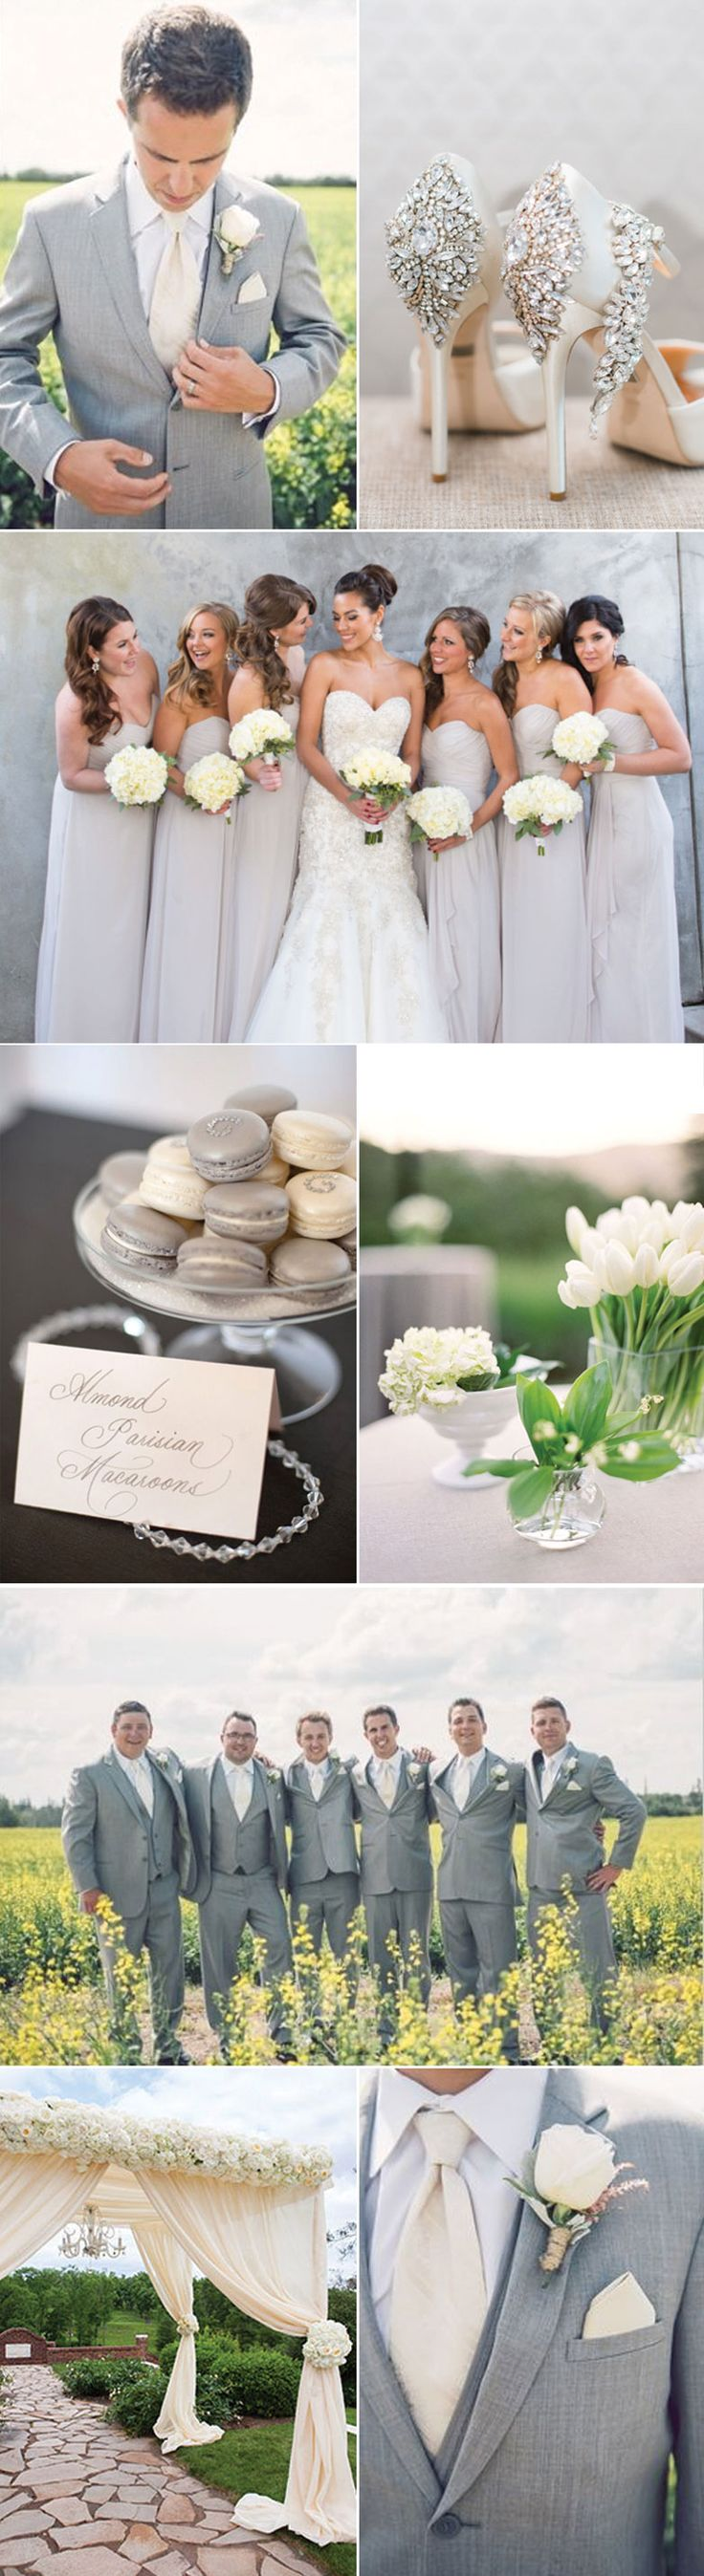 Linen and Silver Wedding Ideas and Inspiration